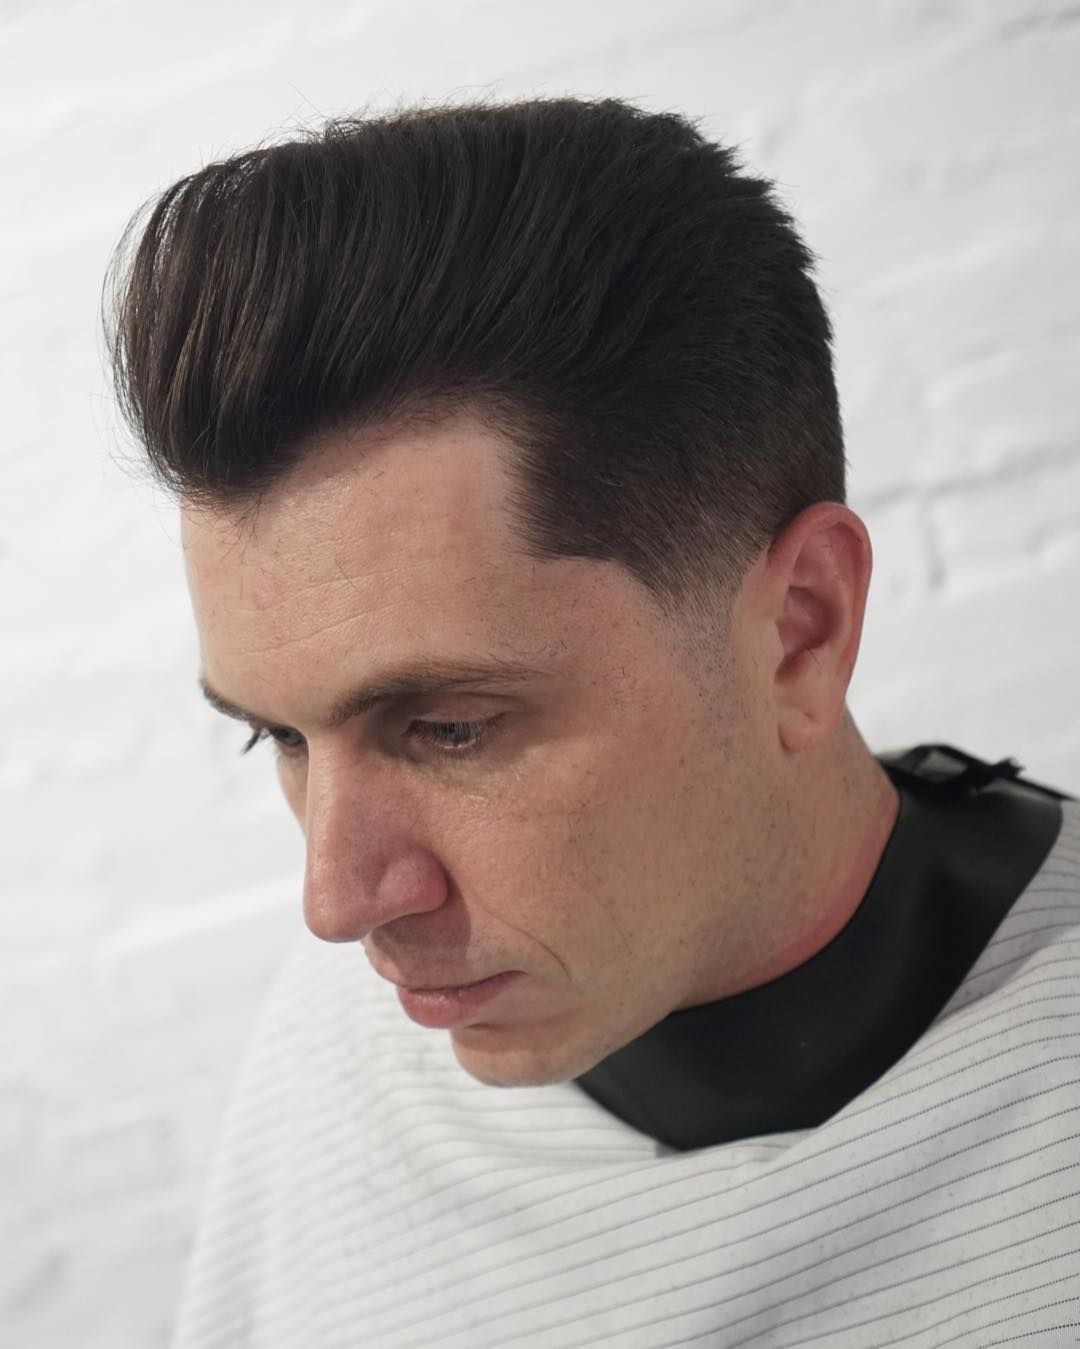 Haircuts for men who are balding awesome  reserved hairstyles for balding men  never restrict on